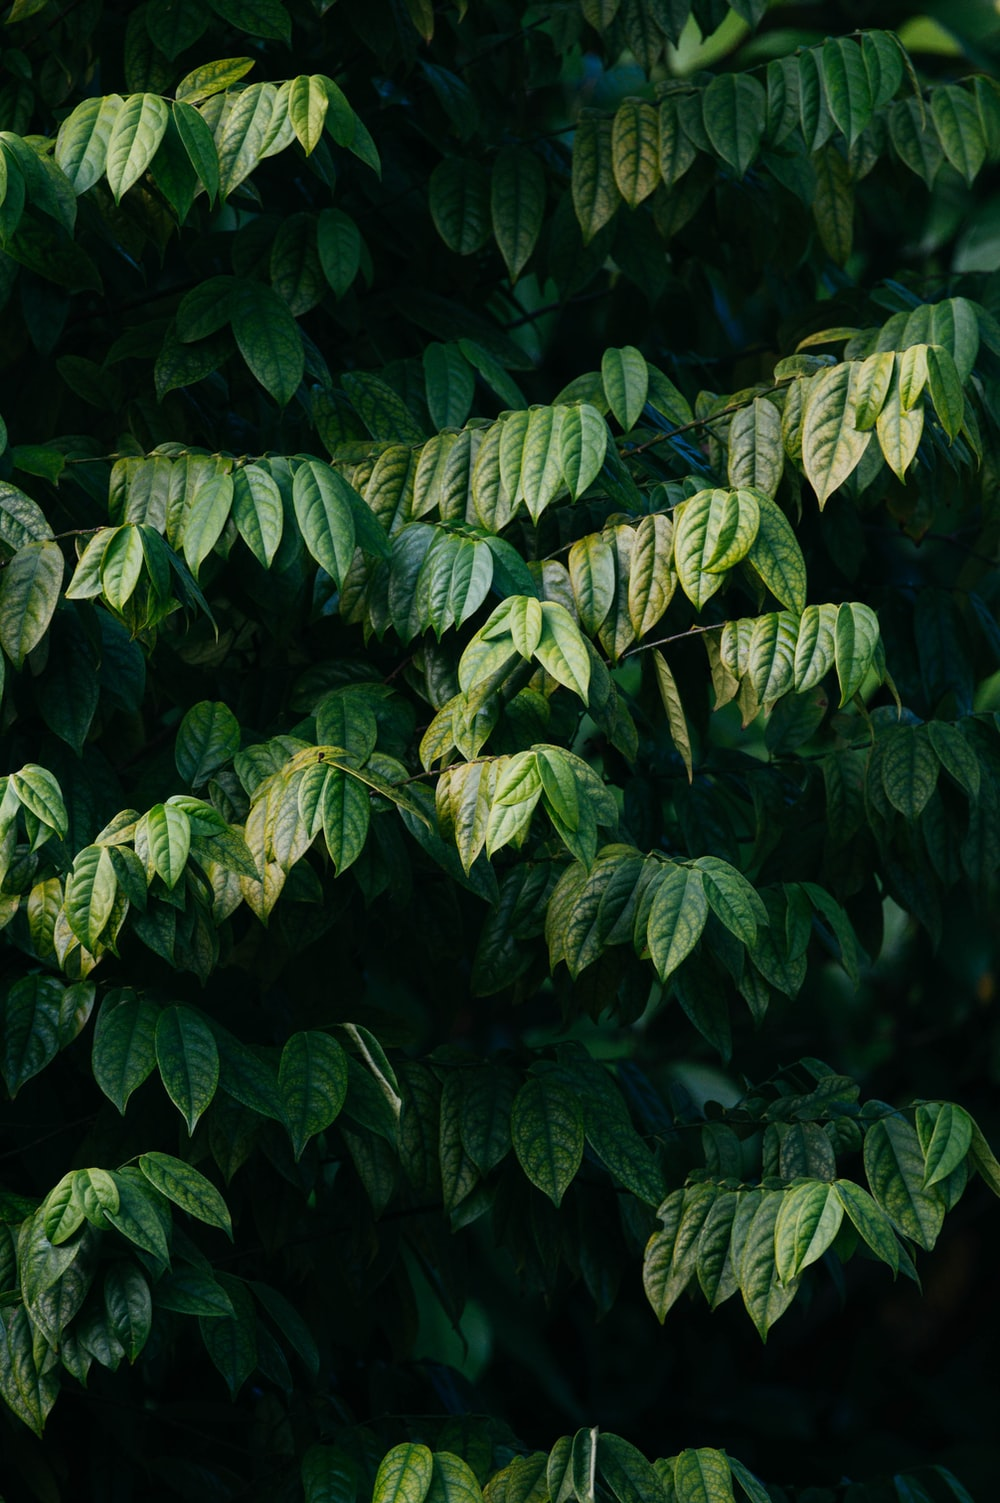 selective focus photography of green-leafed plants during daytime